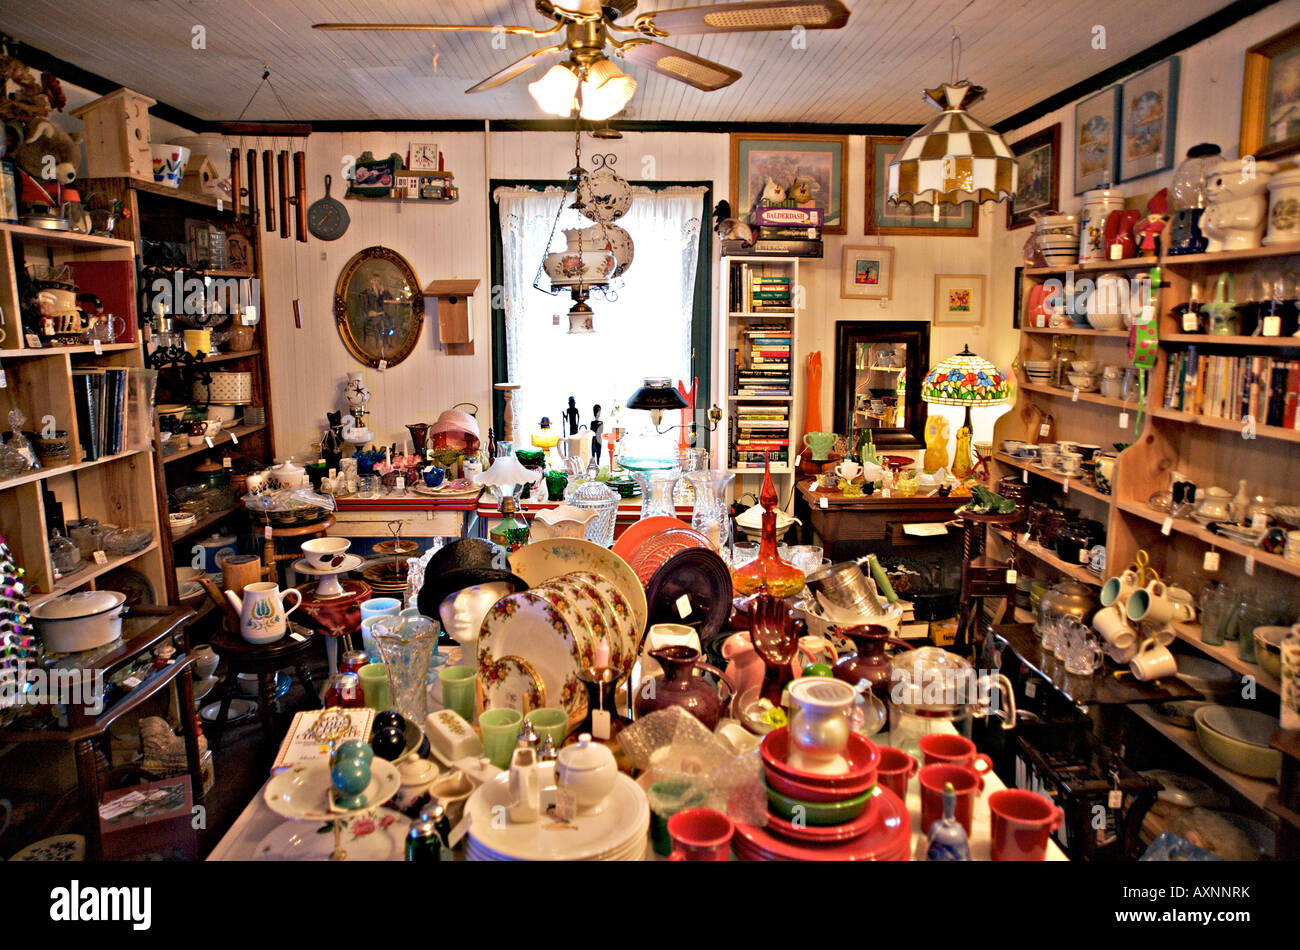 Display of antiques. - Stock Image